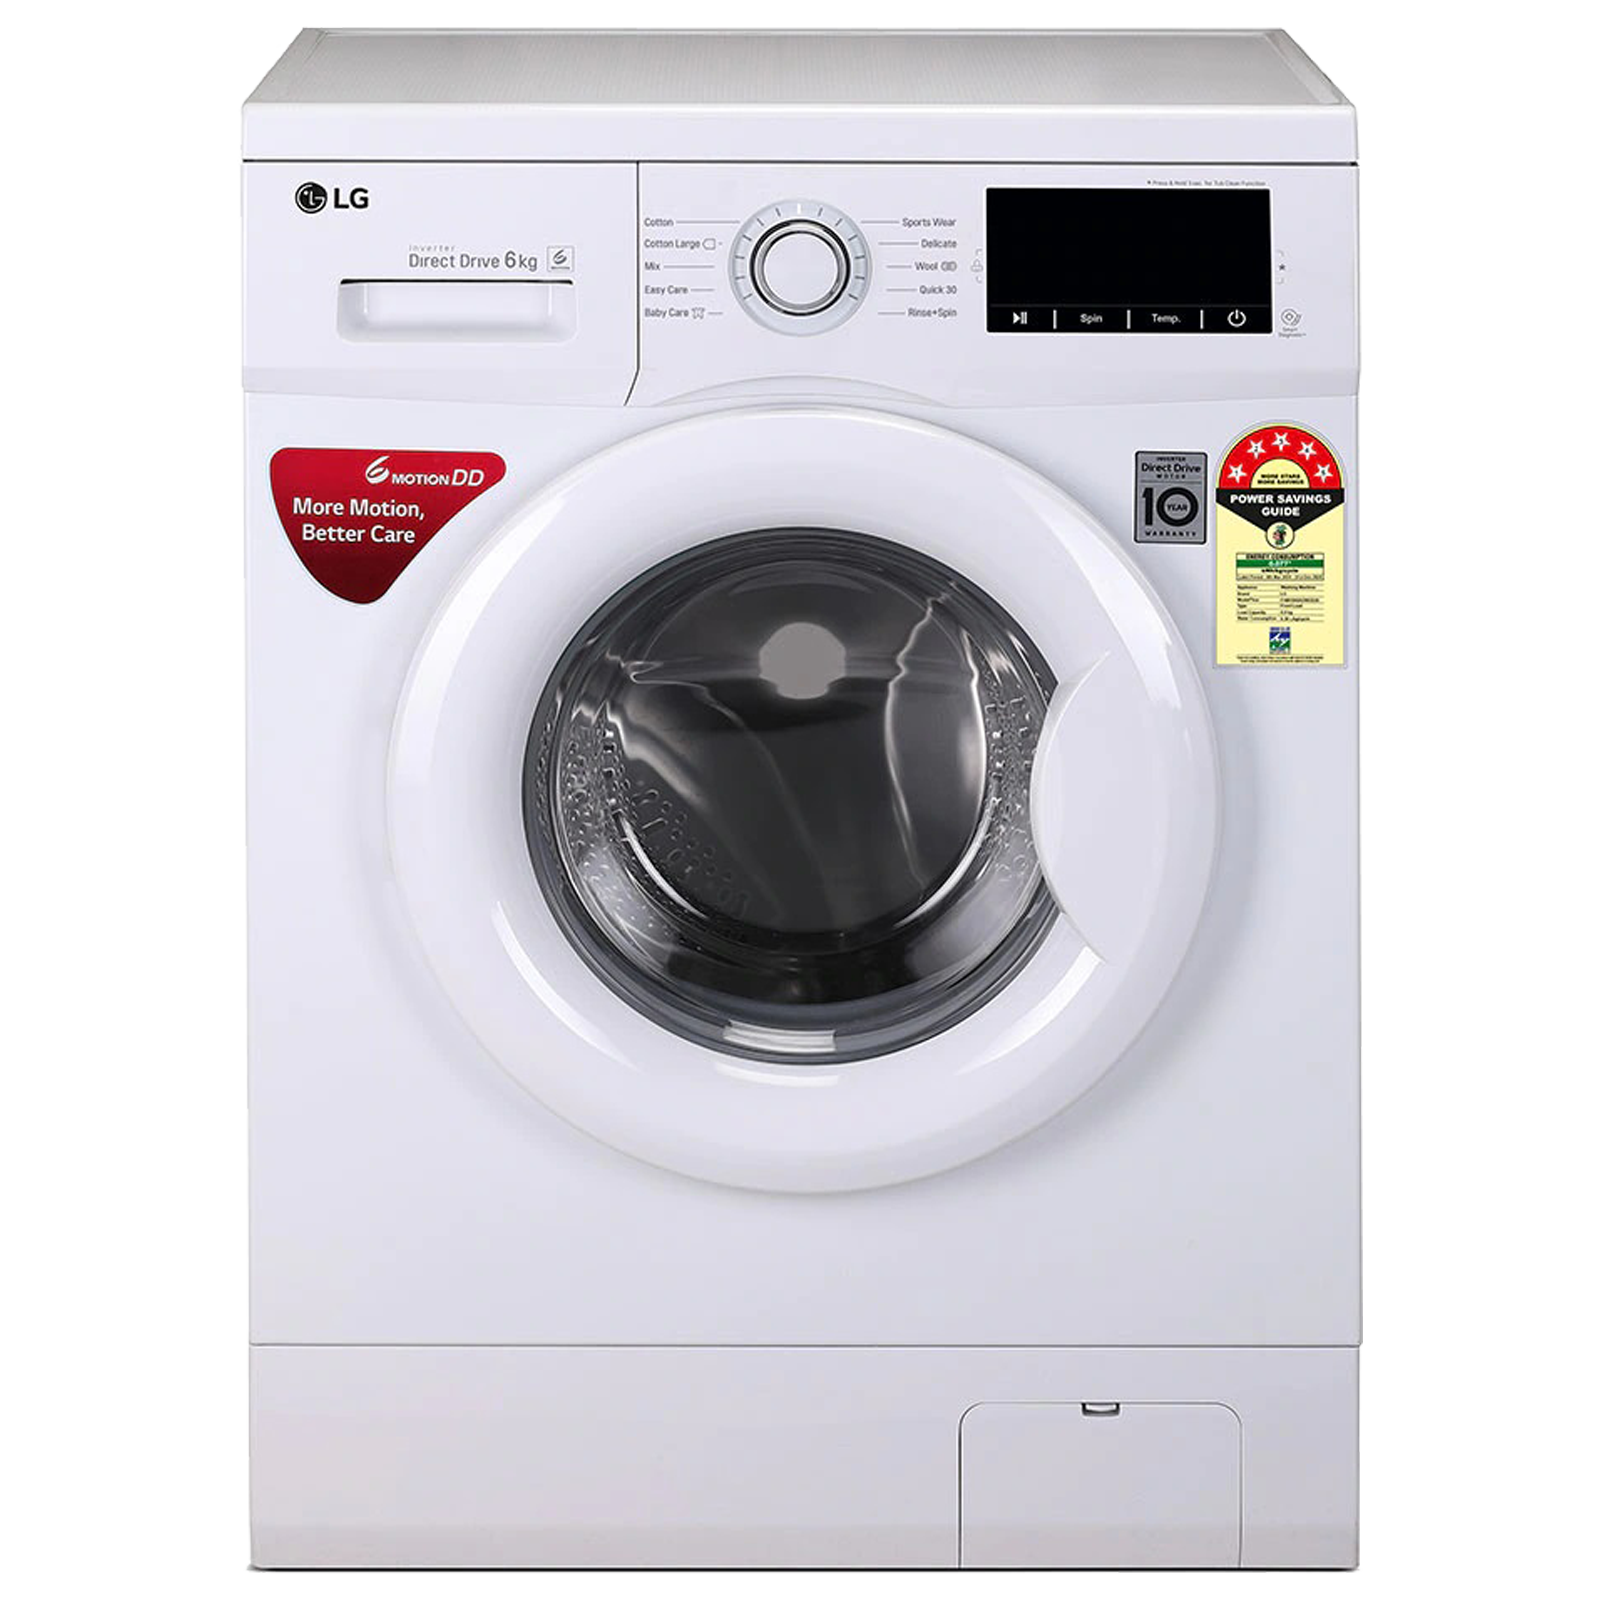 LG 6 kg 5 Star Fully Automatic Front Load Washing Machine (Smart Diagnosis, FHM1006ZDW.ABWQEIL, White)_1